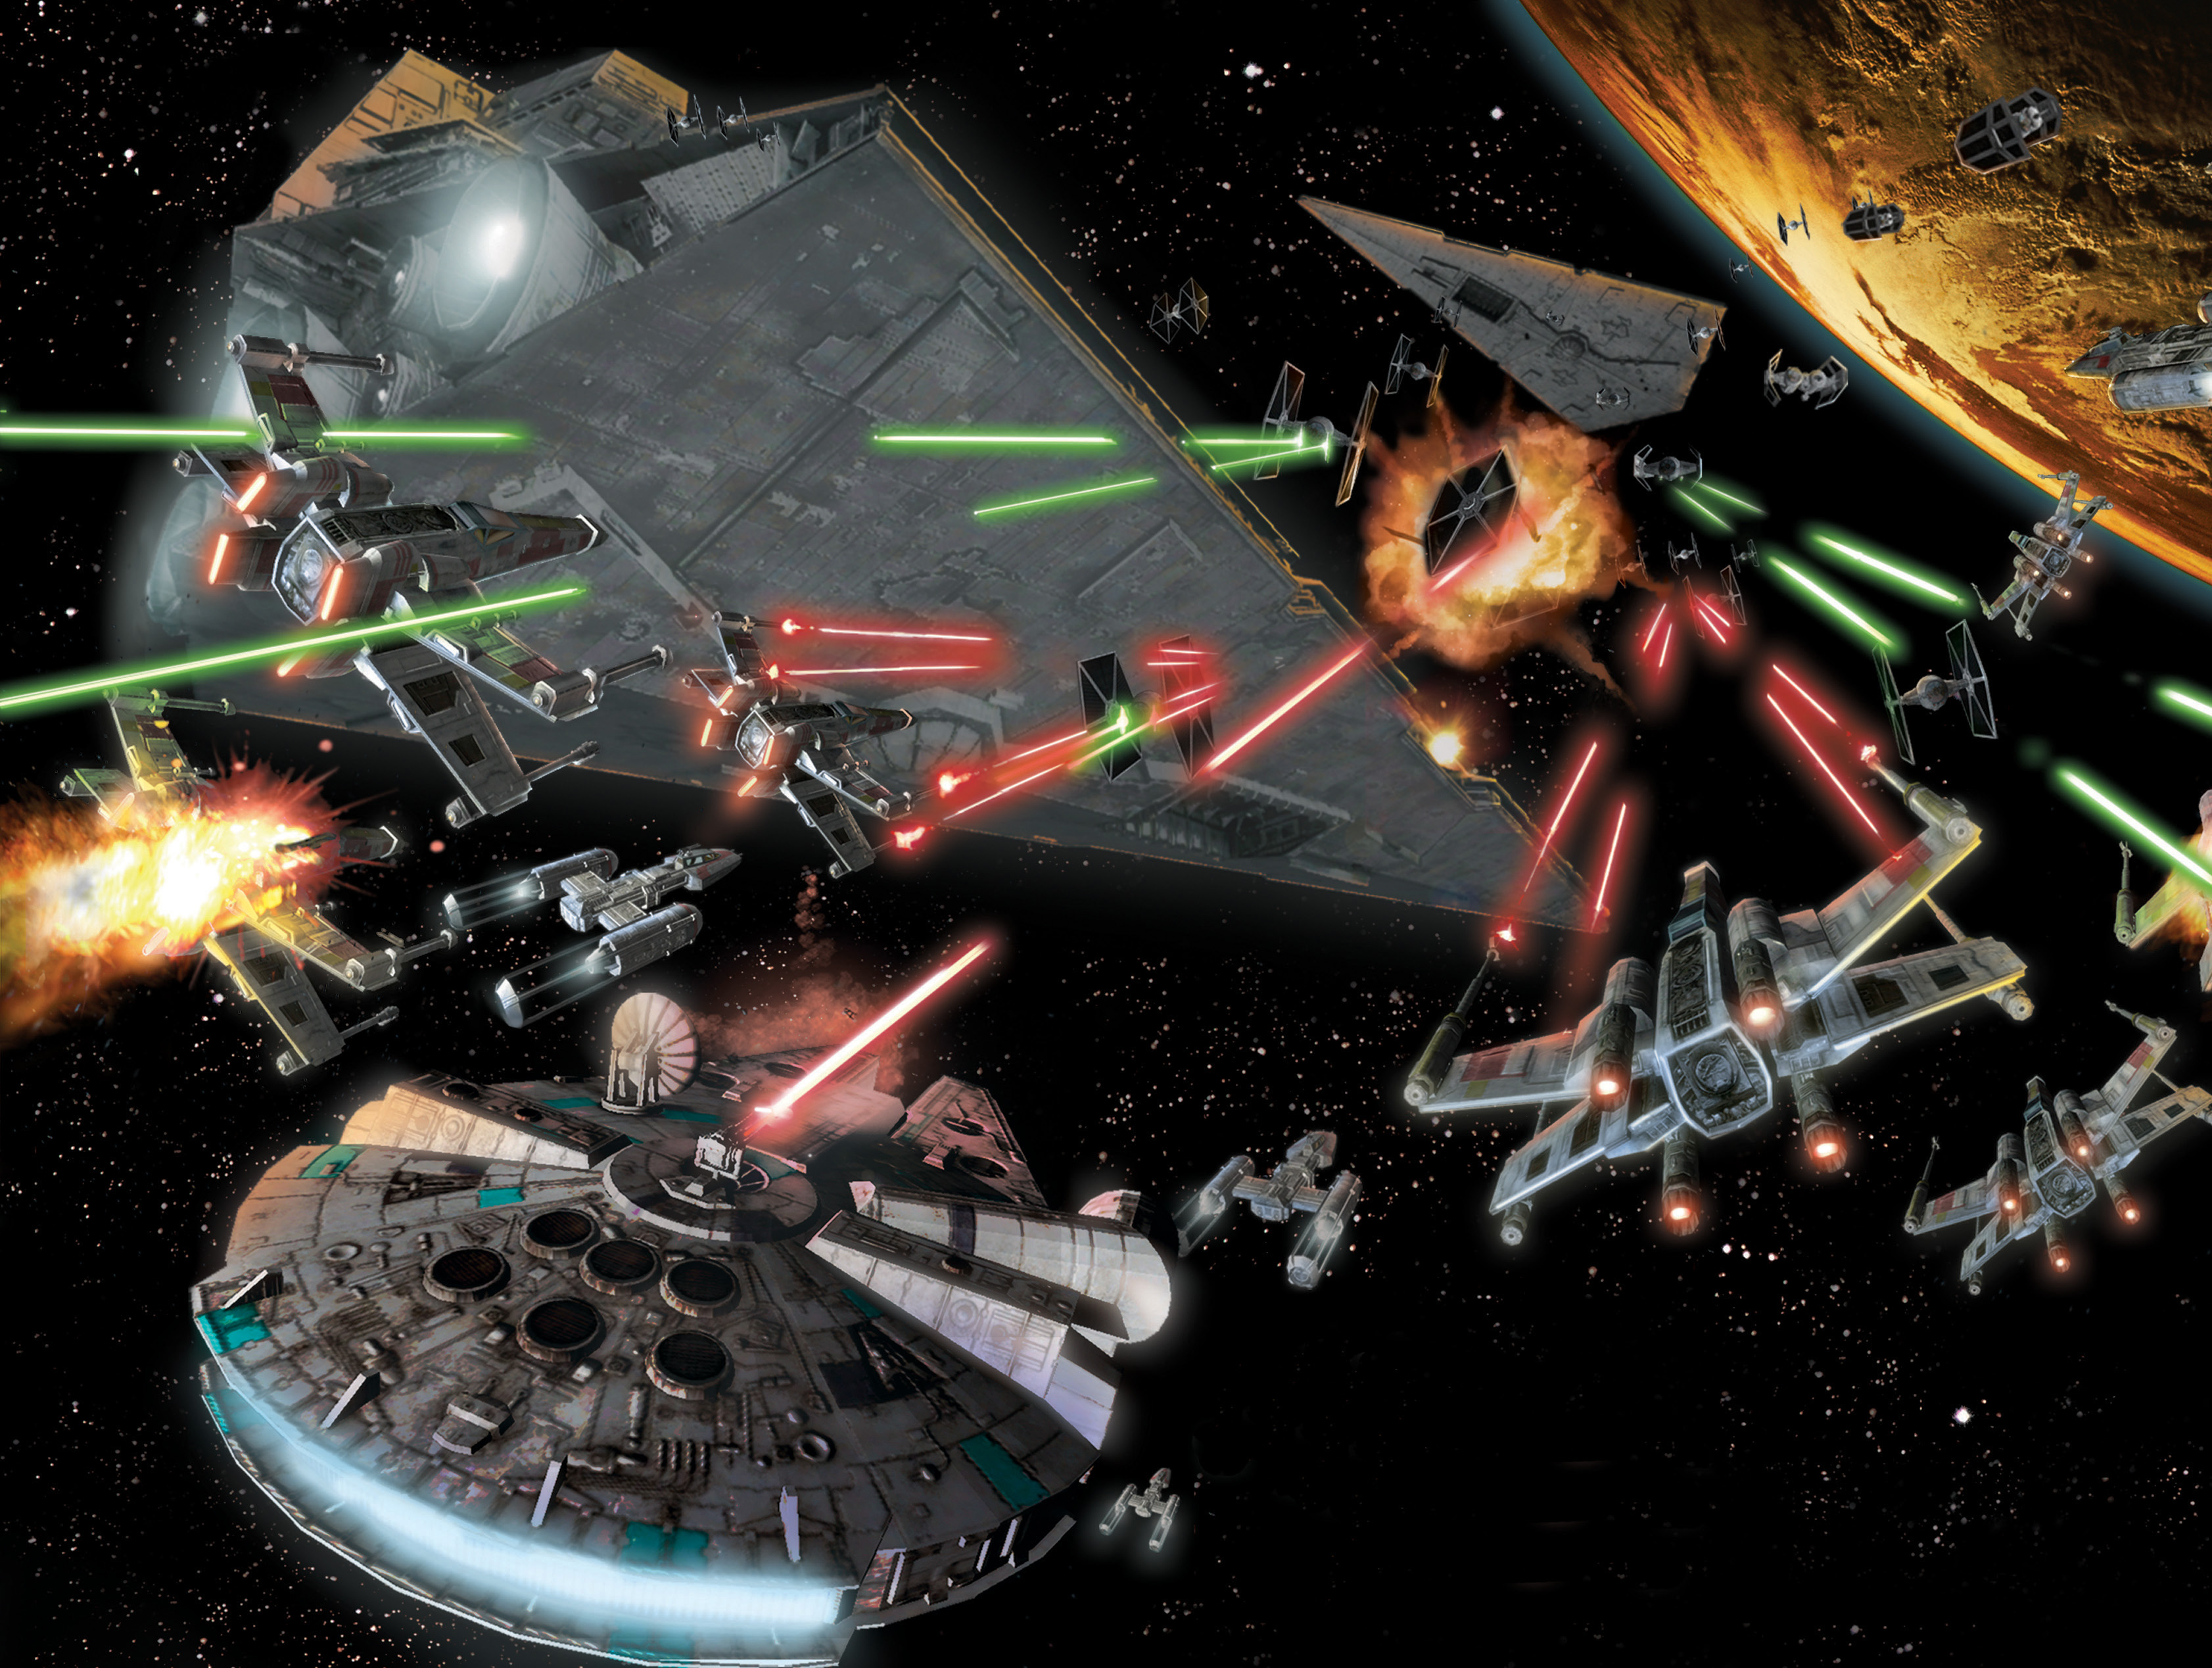 II LIGA XWING - CLUB RUNA SpaceWarfare-SWGMB